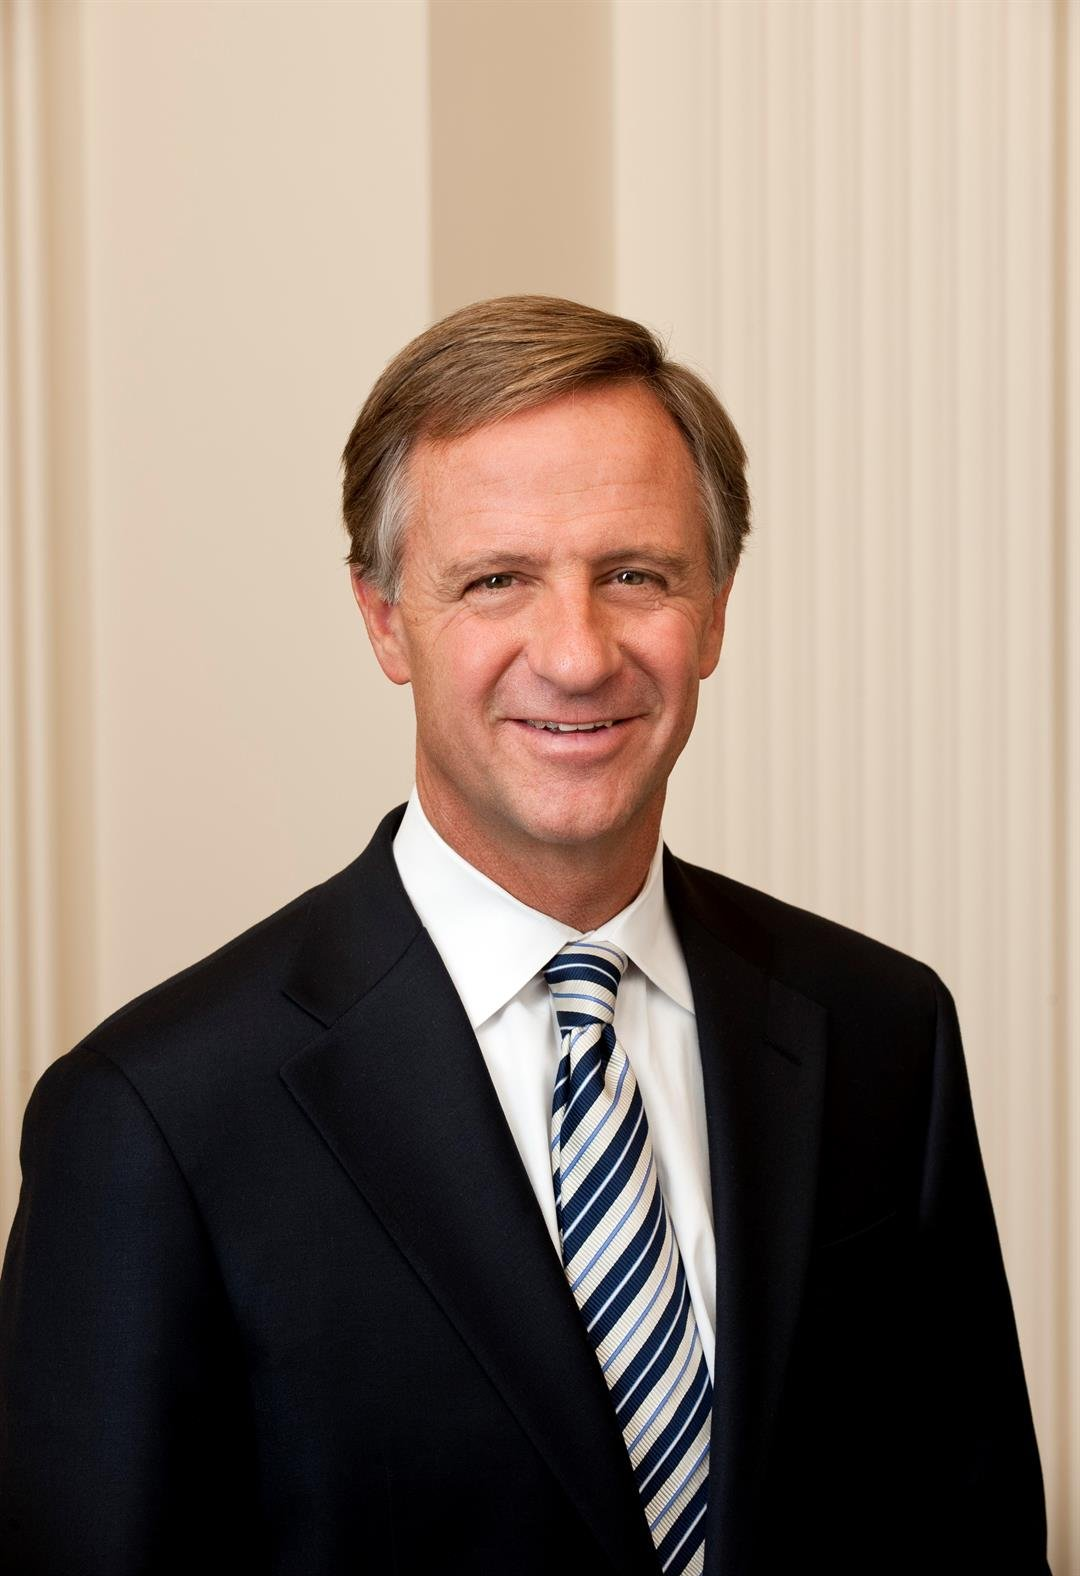 Tennessee Gov. Bill Haslam. Governor's office photo.